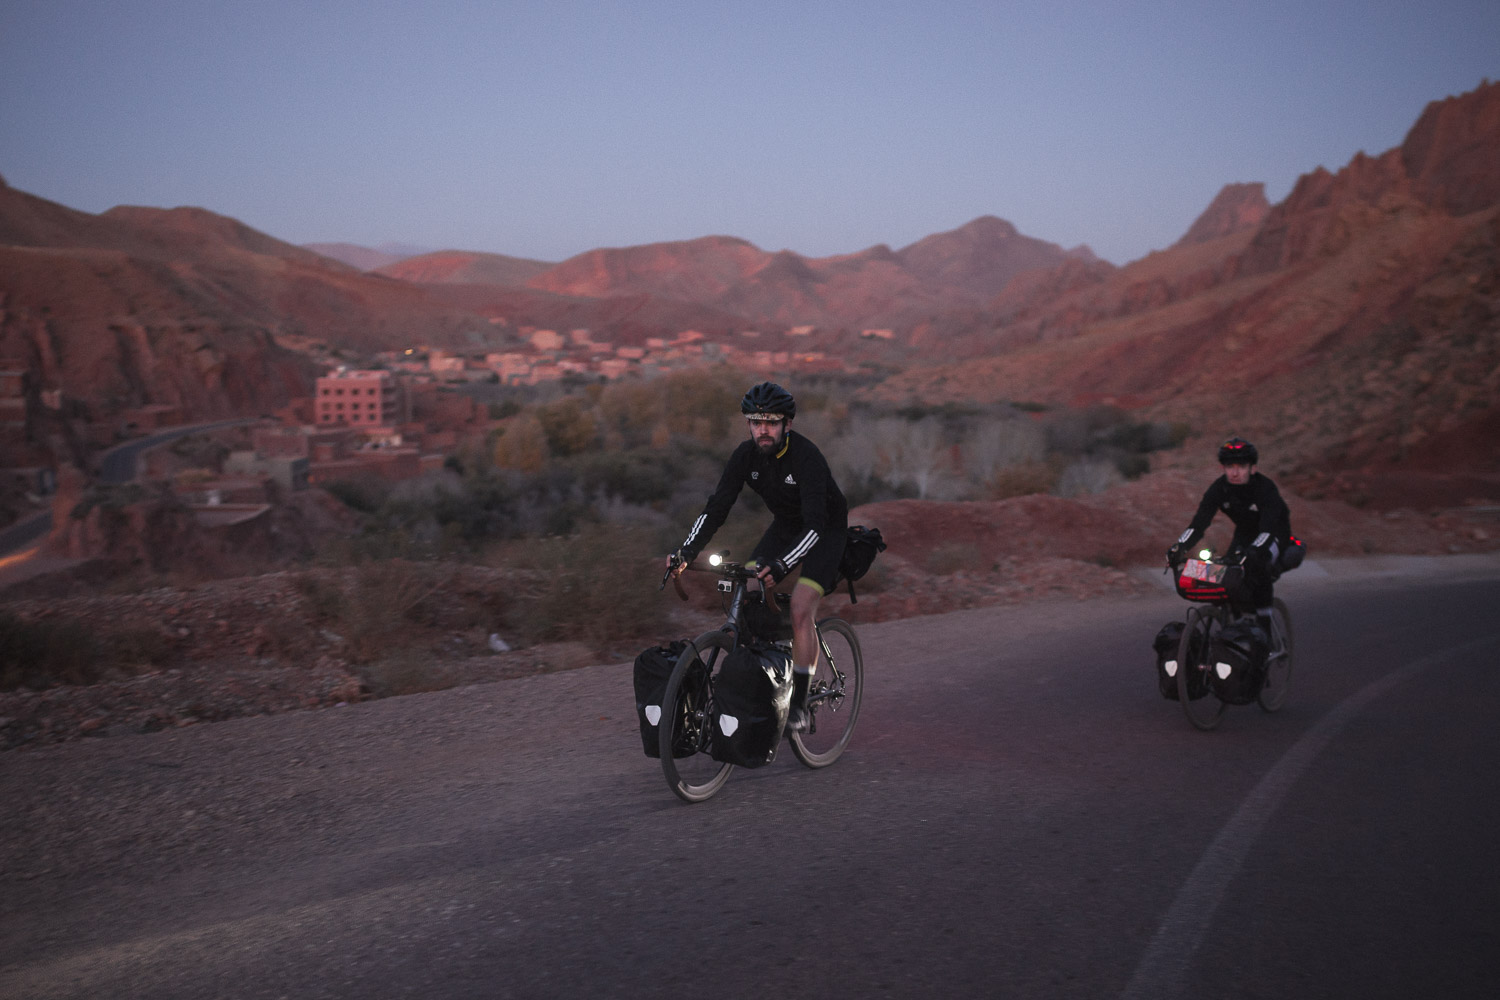 8bar bikes adventures morocco gravel 20151212 0034 bearbeitet - 8bar Adventures - Morocco - High Atlas - Part 2/2